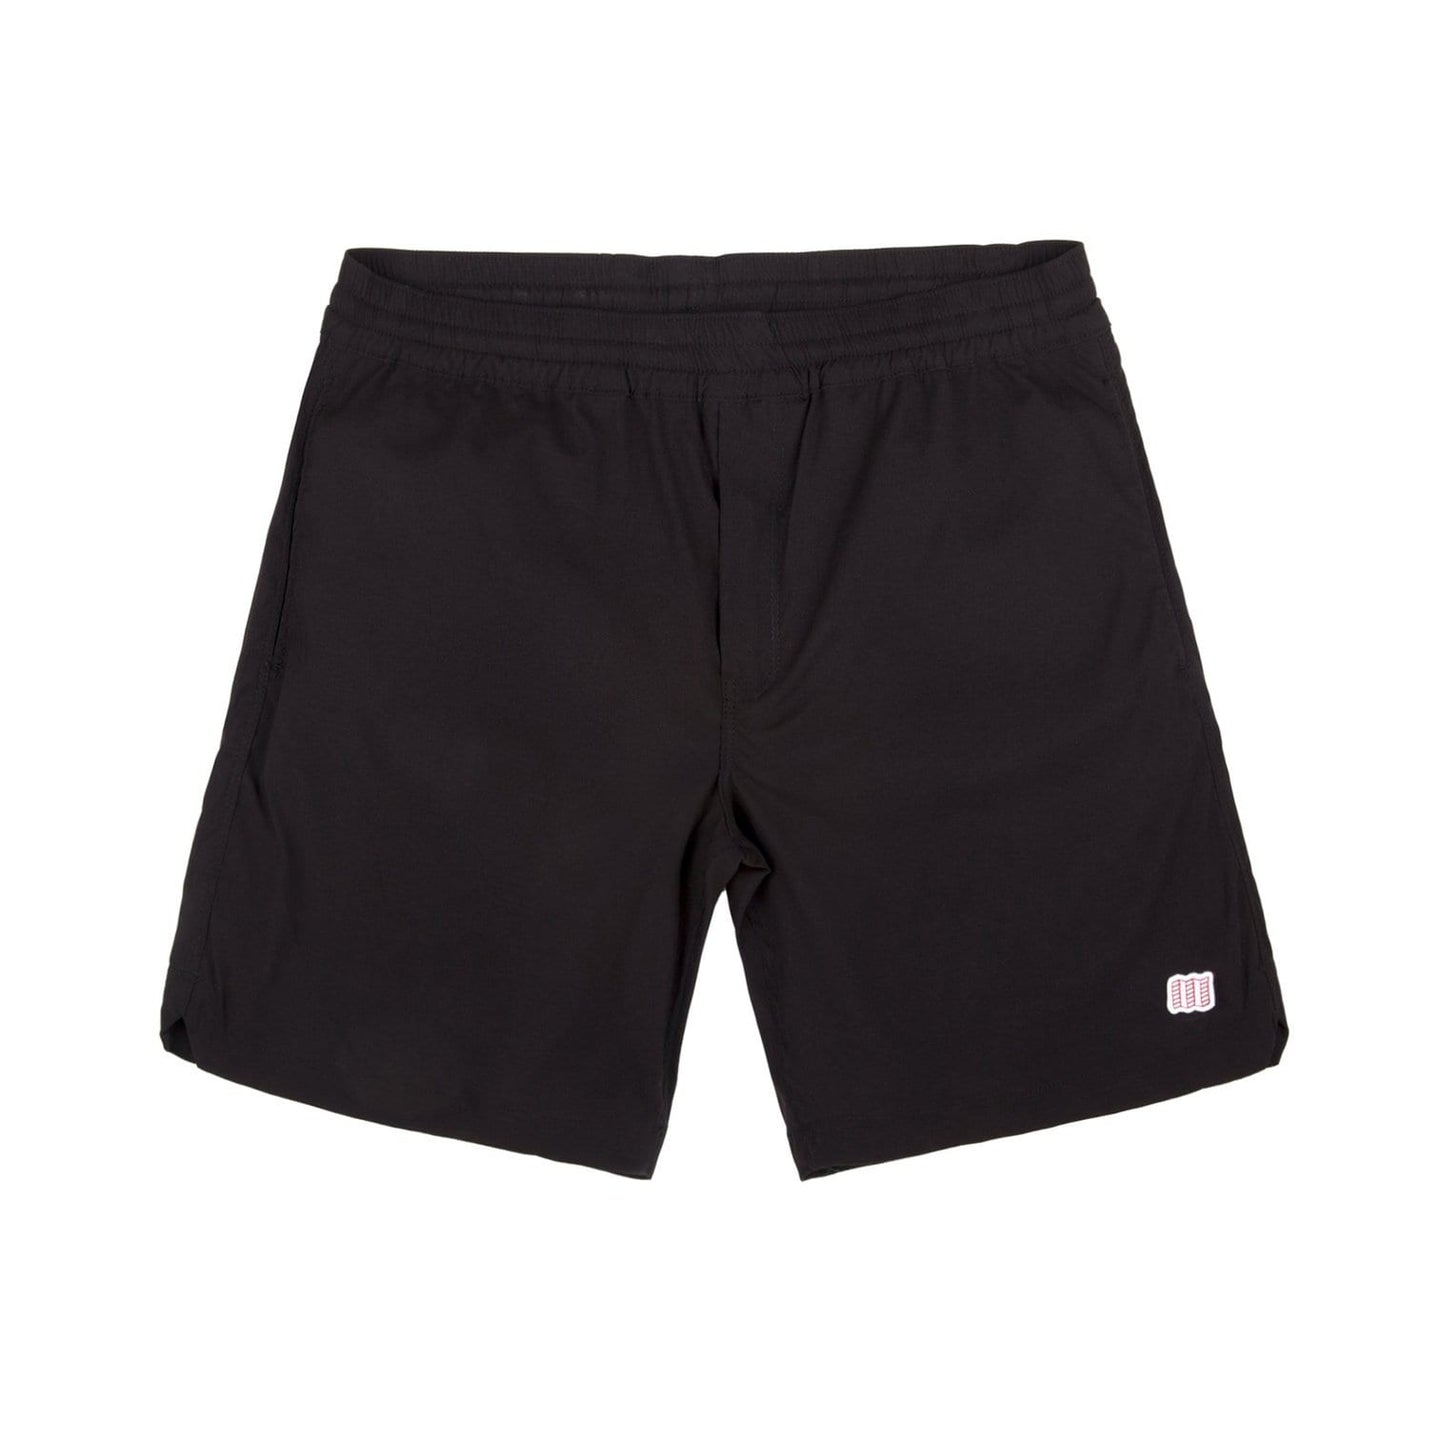 Topo Designs Global Shorts / Neighborhood Goods